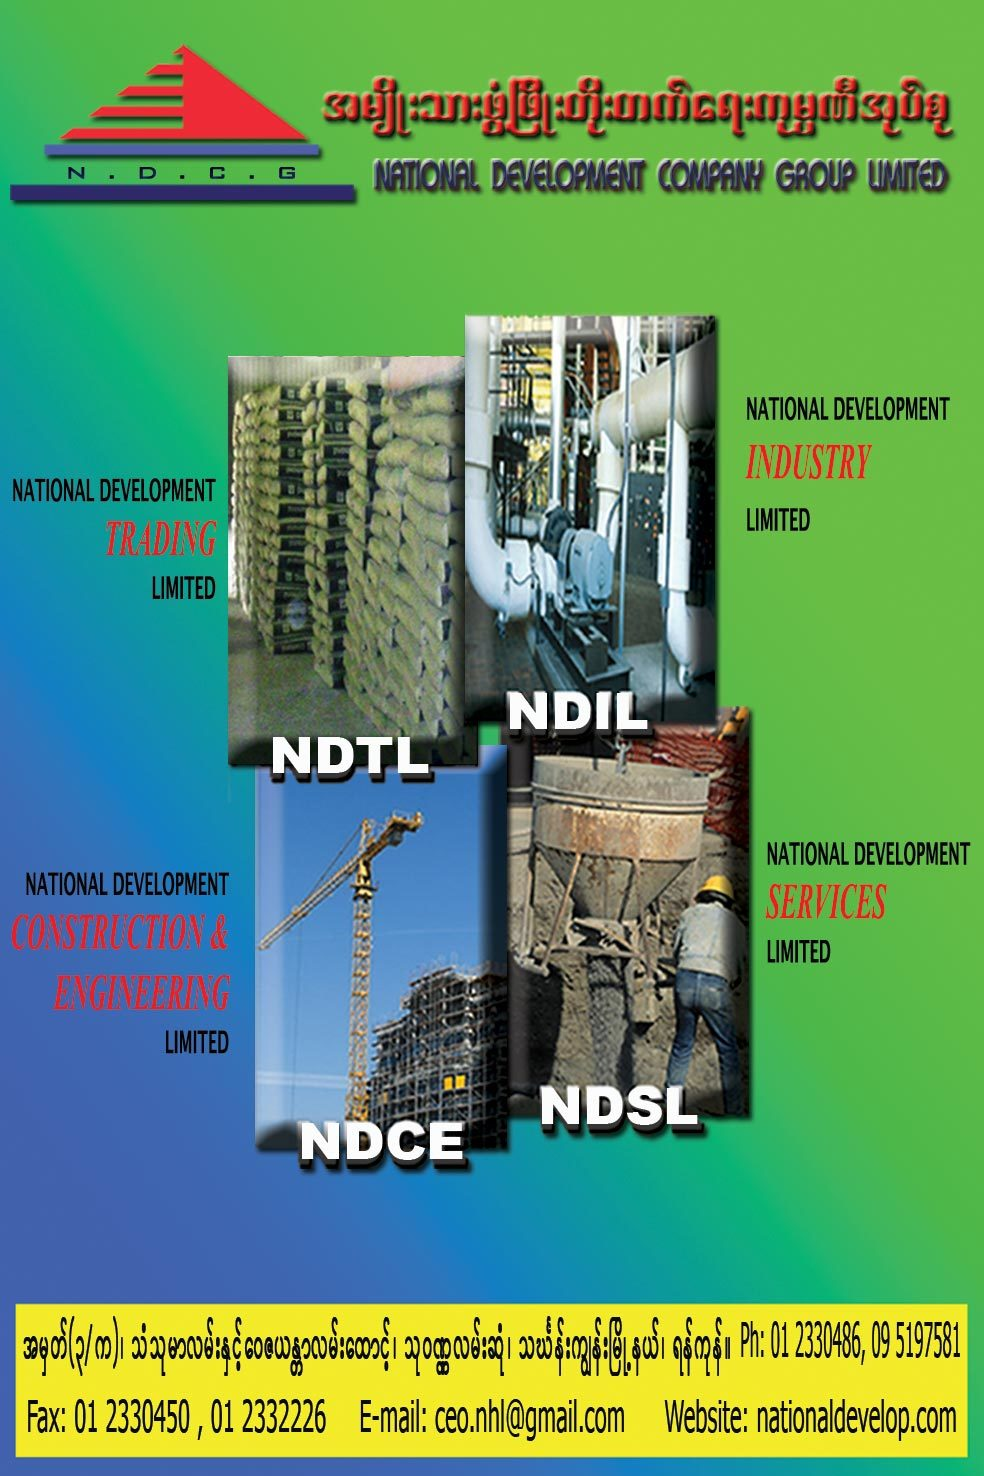 National-Development-Company-Group-Limited_Construction-Services_4755.jpg